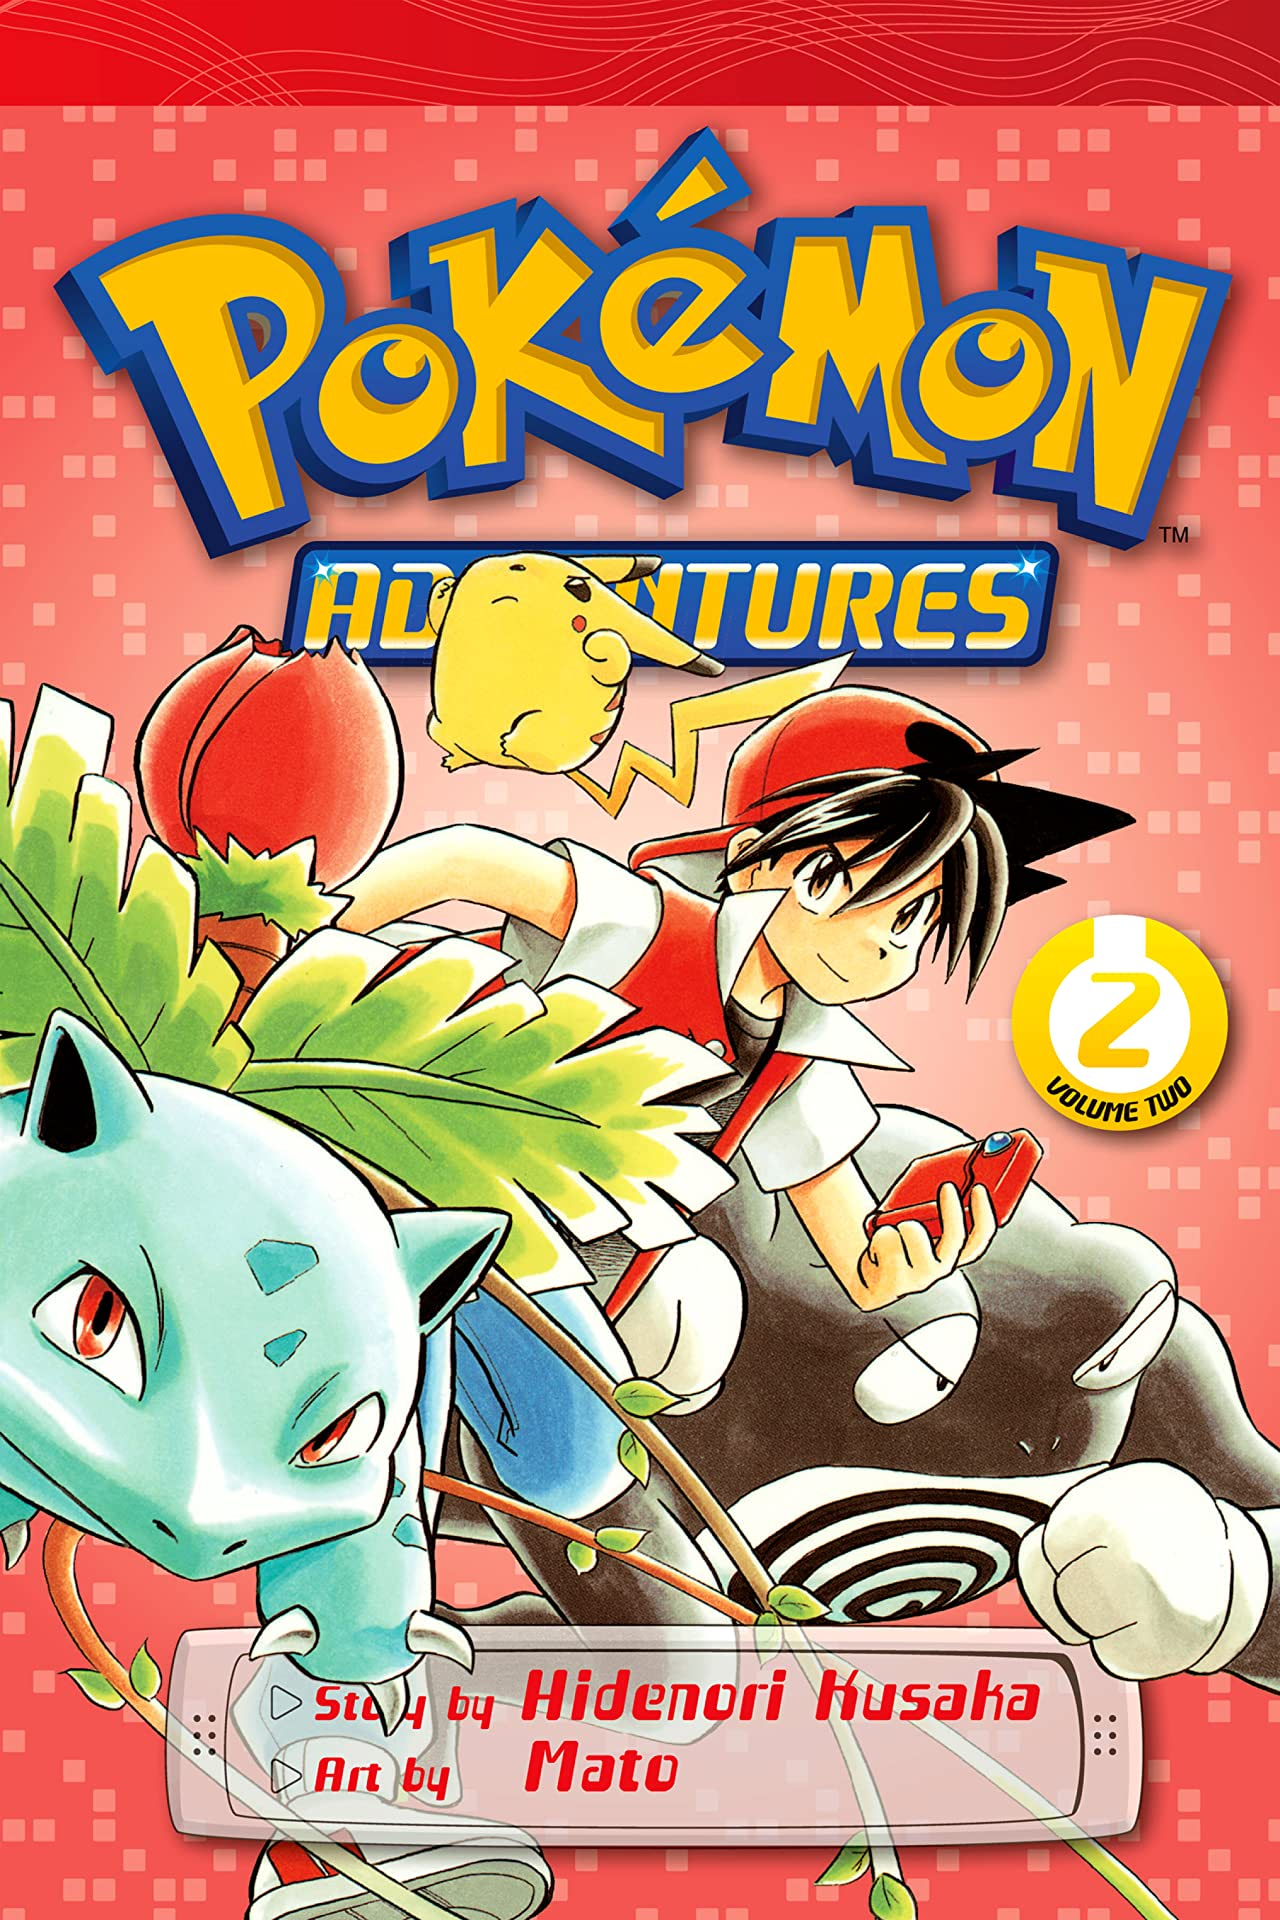 Pokémon Adventures (Red and Blue) Vol. 2